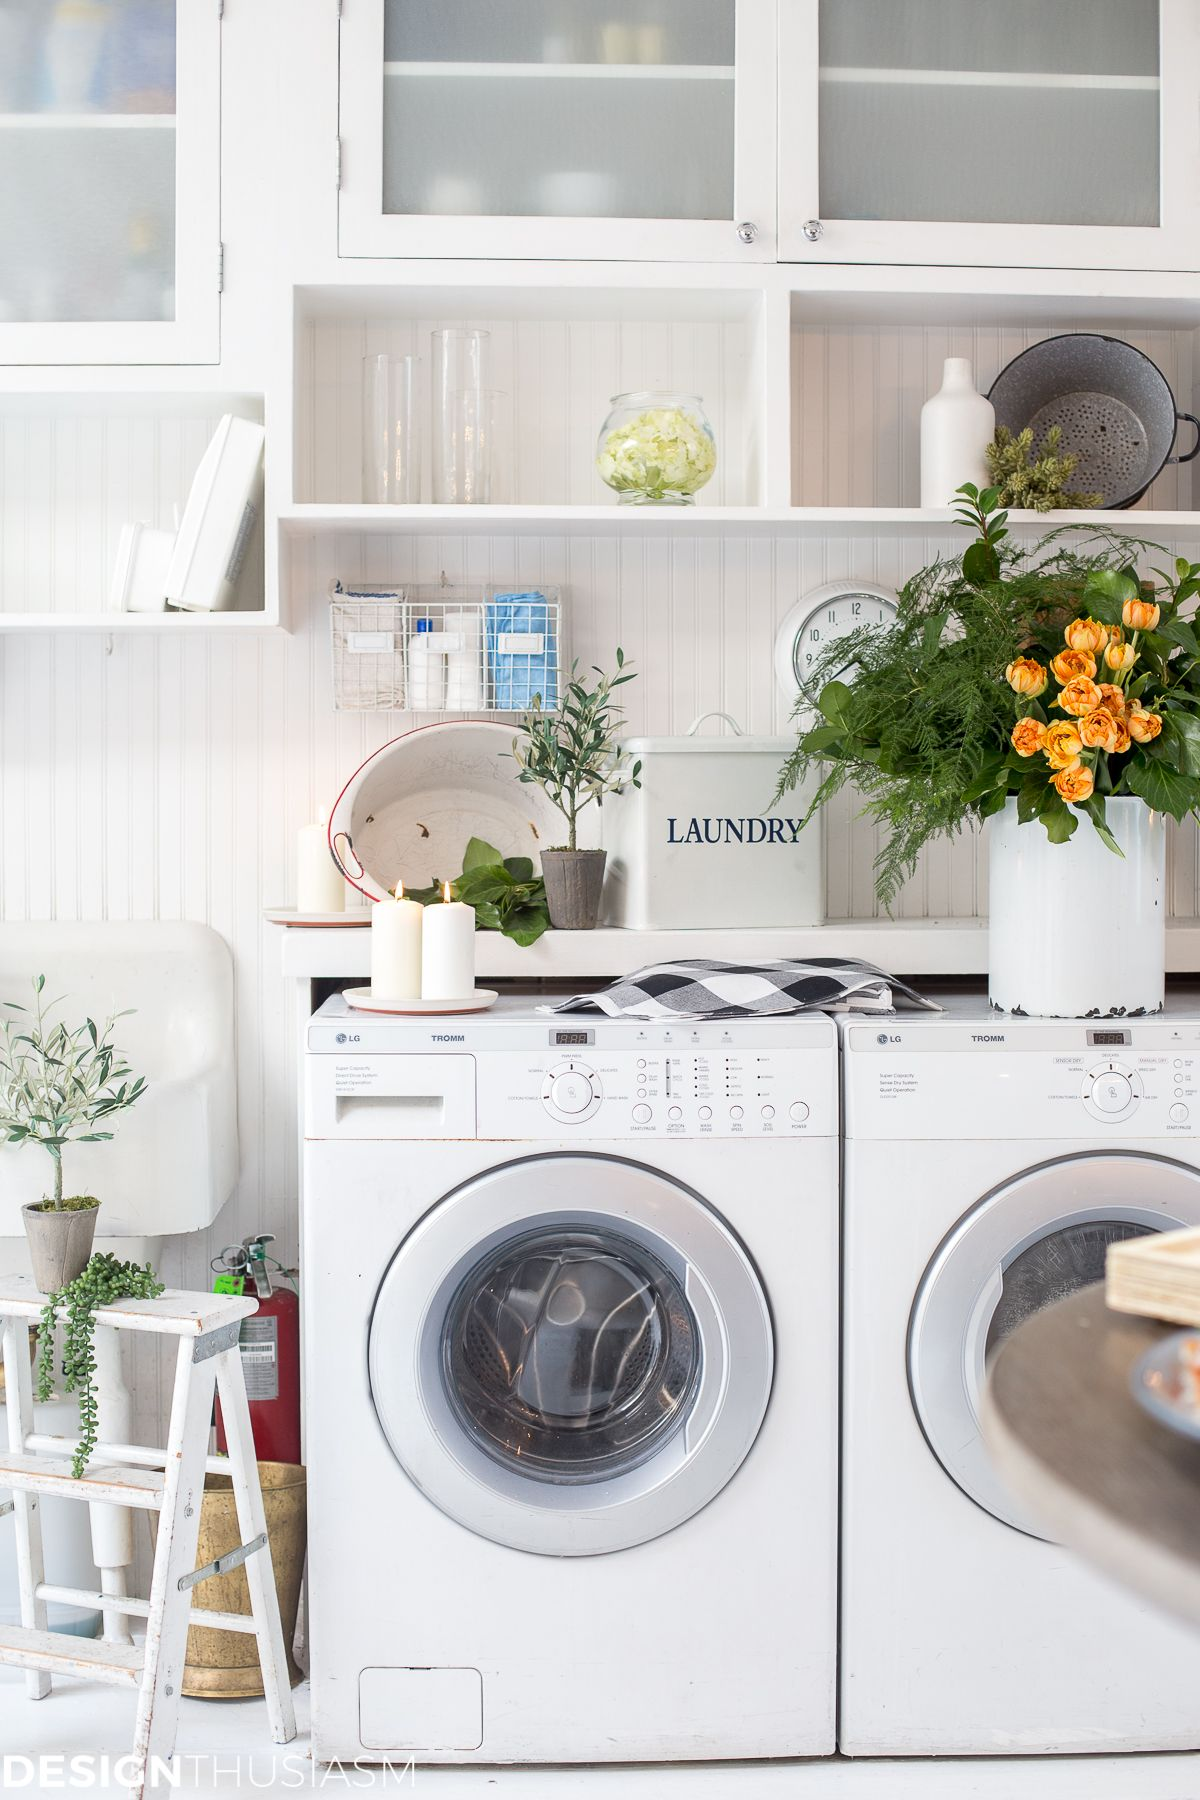 Farmhouse Chic Discovering A New Source For Modern Farmhouse Decor Modern Farmhouse Decor Farmhouse Chic Stylish Laundry Room